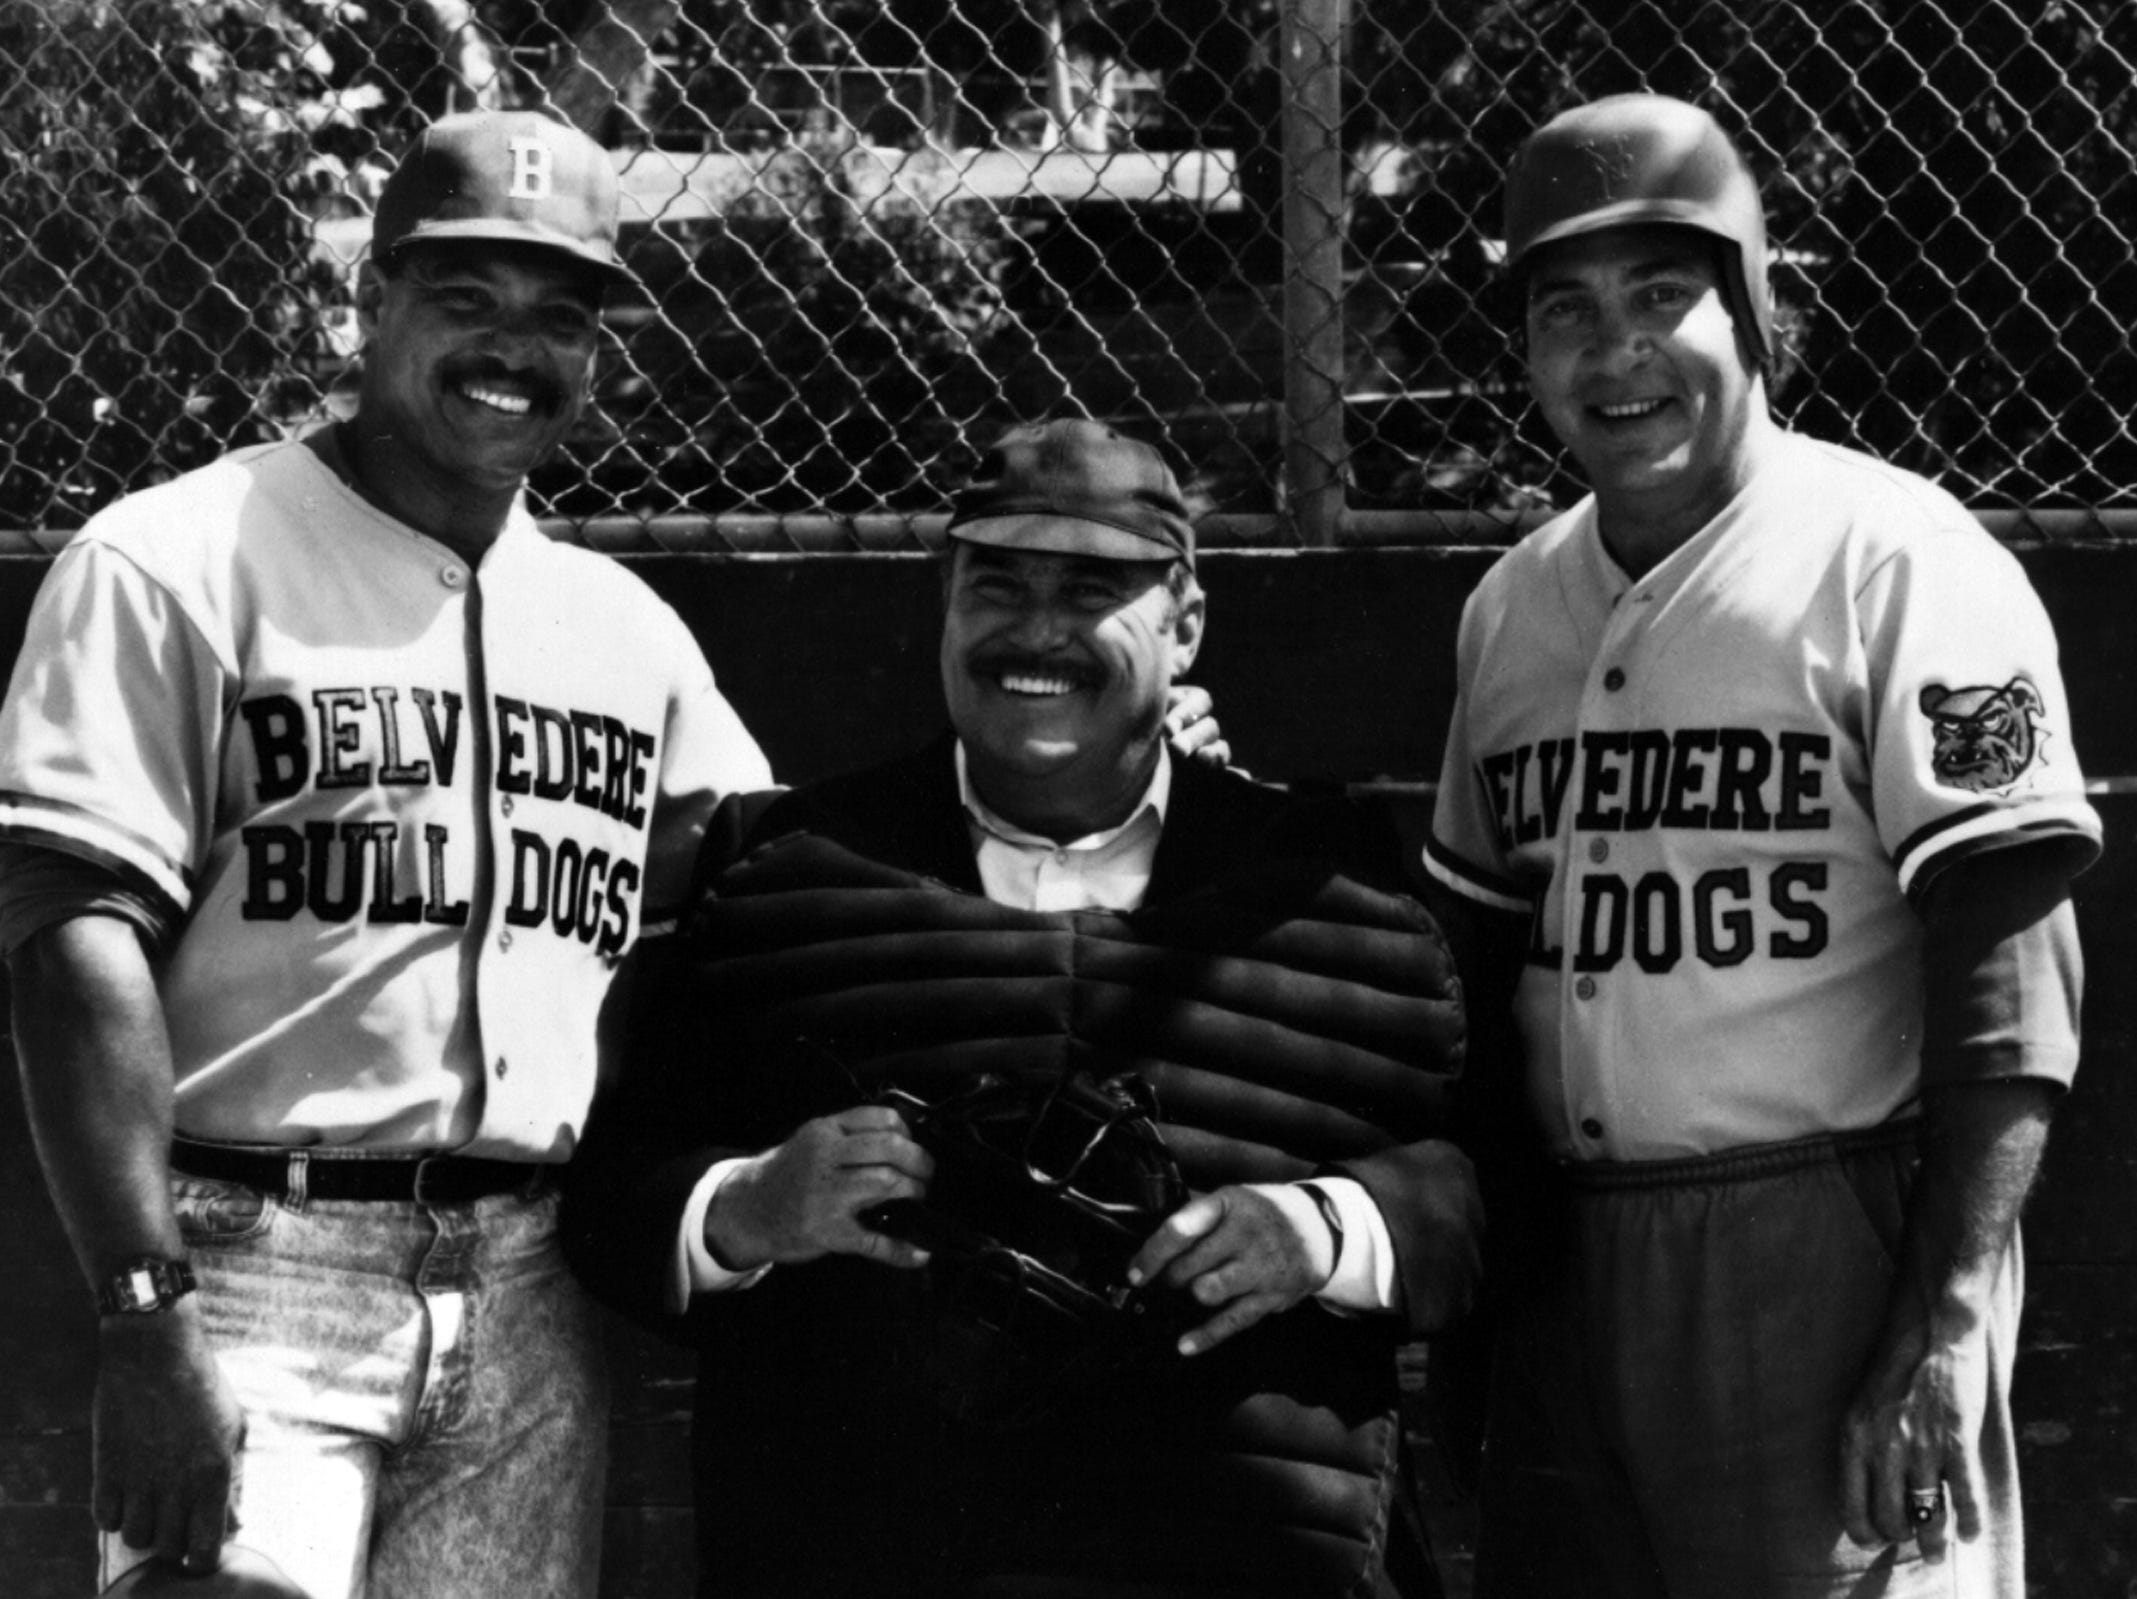 """1989: A couple of real-life heavy hitters, Baseball Hall of Famers Reggie Jackson, left, and Johnny Bench, right, join the Belvedere Bulldogs, and Christopher Hewett, who will call 'em as he sees 'em as Lynn Belvedere, in """"The Field,"""" a baseball-oriented premiere episode for """"Mr. Belevedere,"""" beginning the 1989-90 season on the ABC Television Network, Saturday, Sept. 16 (8:00-8:30 p.m., ET). Photo credit: 1989 copyright Capital Cities/ABC, Inc. scanned August 8, 2013"""